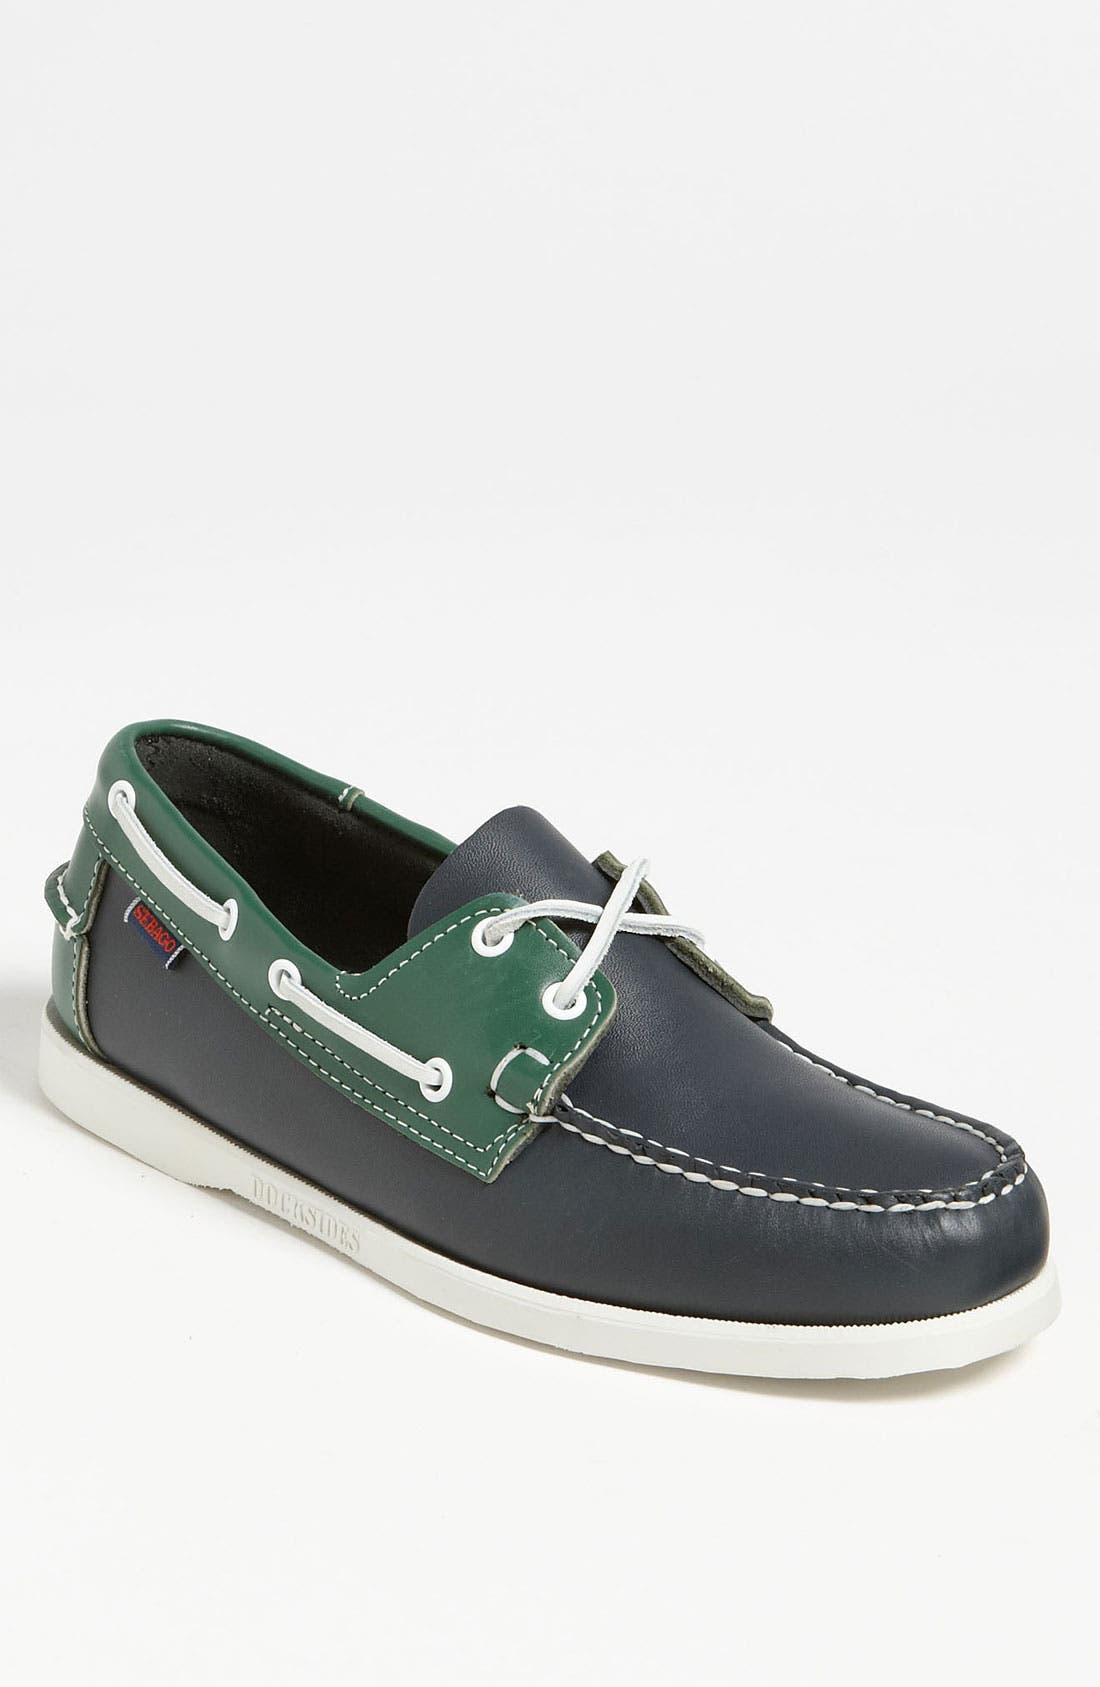 Alternate Image 1 Selected - Sebago 'Spinnaker' Boat Shoe